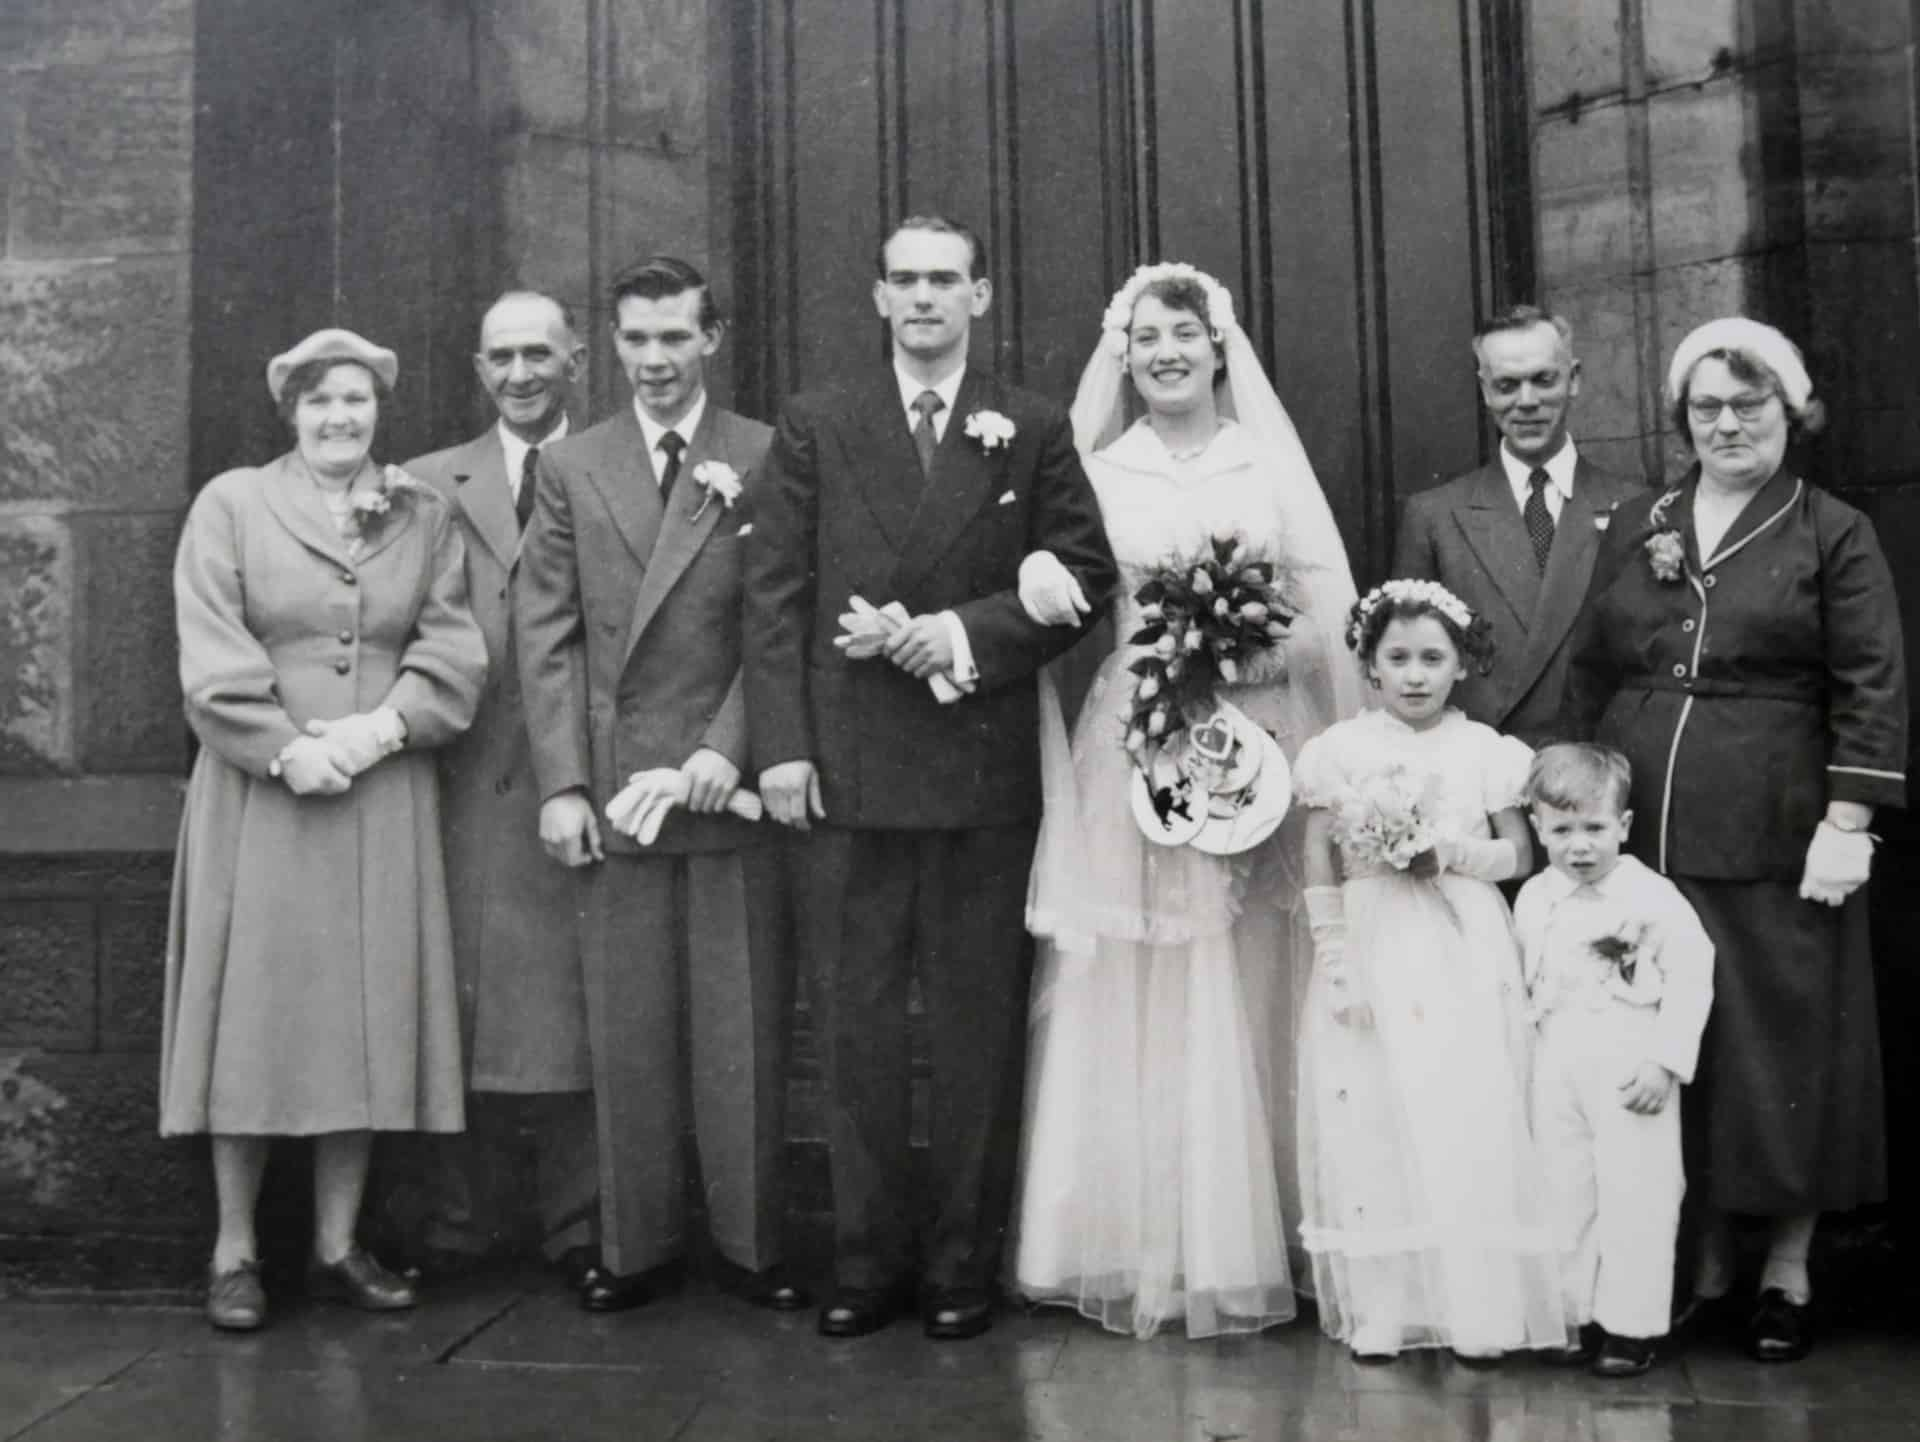 Getting maried at Christ Church in Coseley in 1955